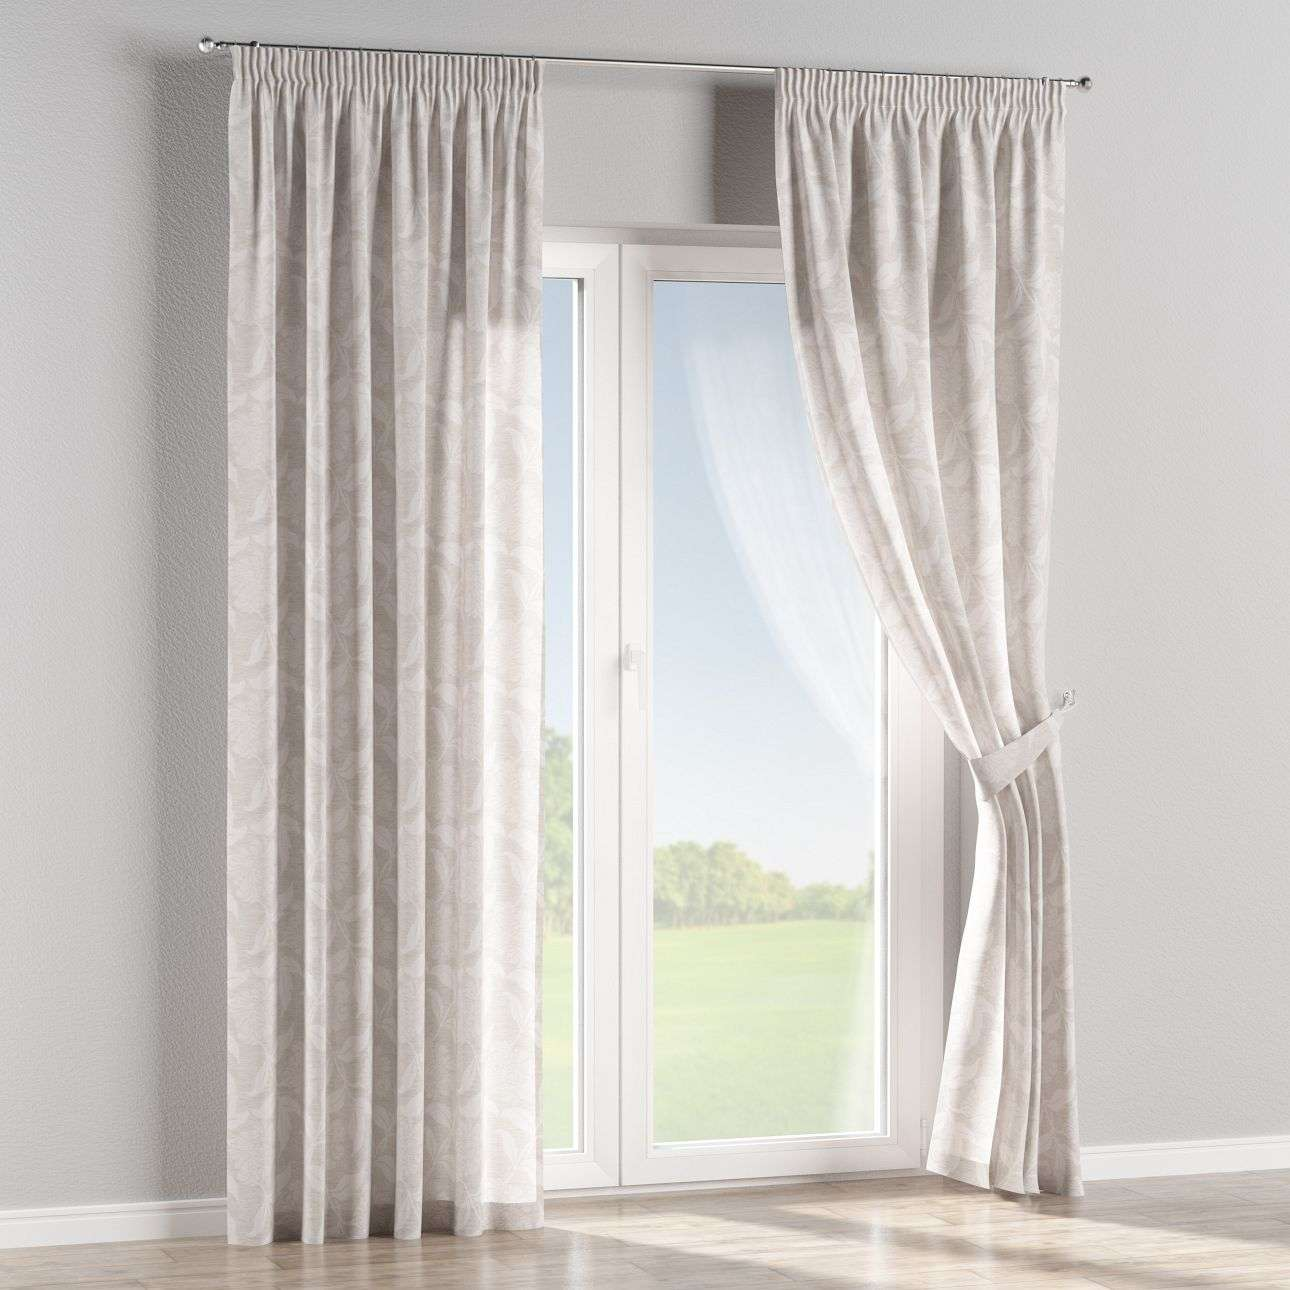 Pencil pleat curtains 130 x 260 cm (51 x 102 inch) in collection Venice, fabric: 140-51